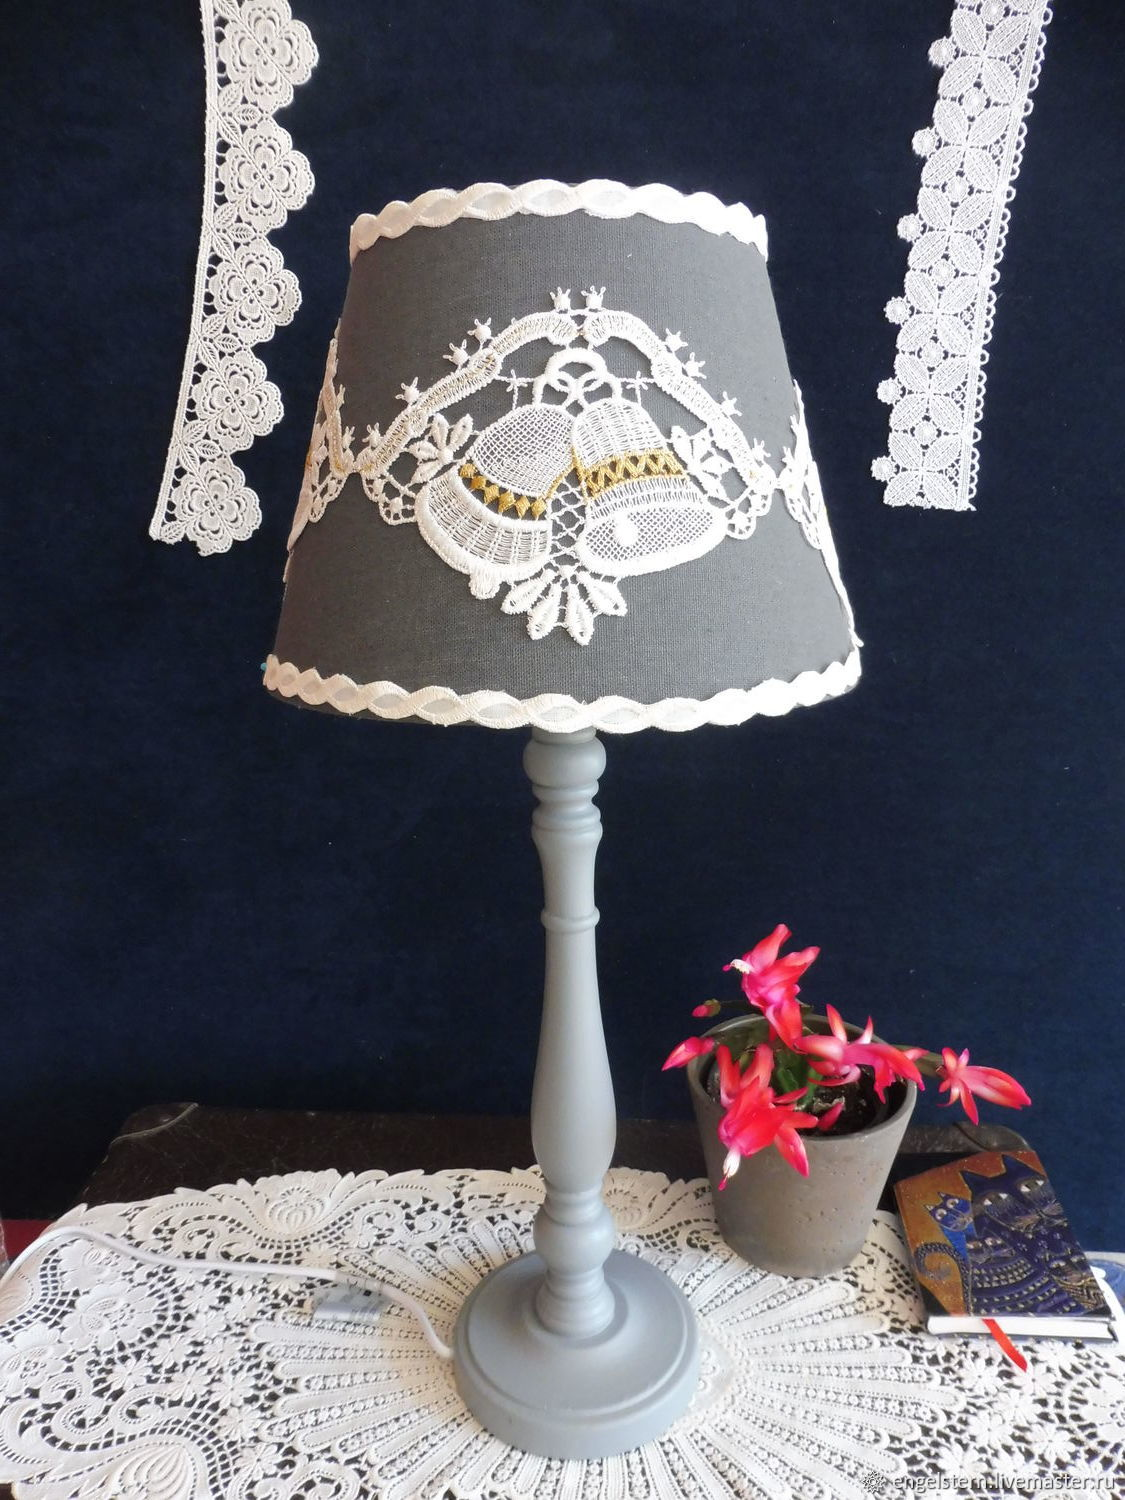 Table Lamp Christmas 1 Shop Online On Livemaster With Shipping